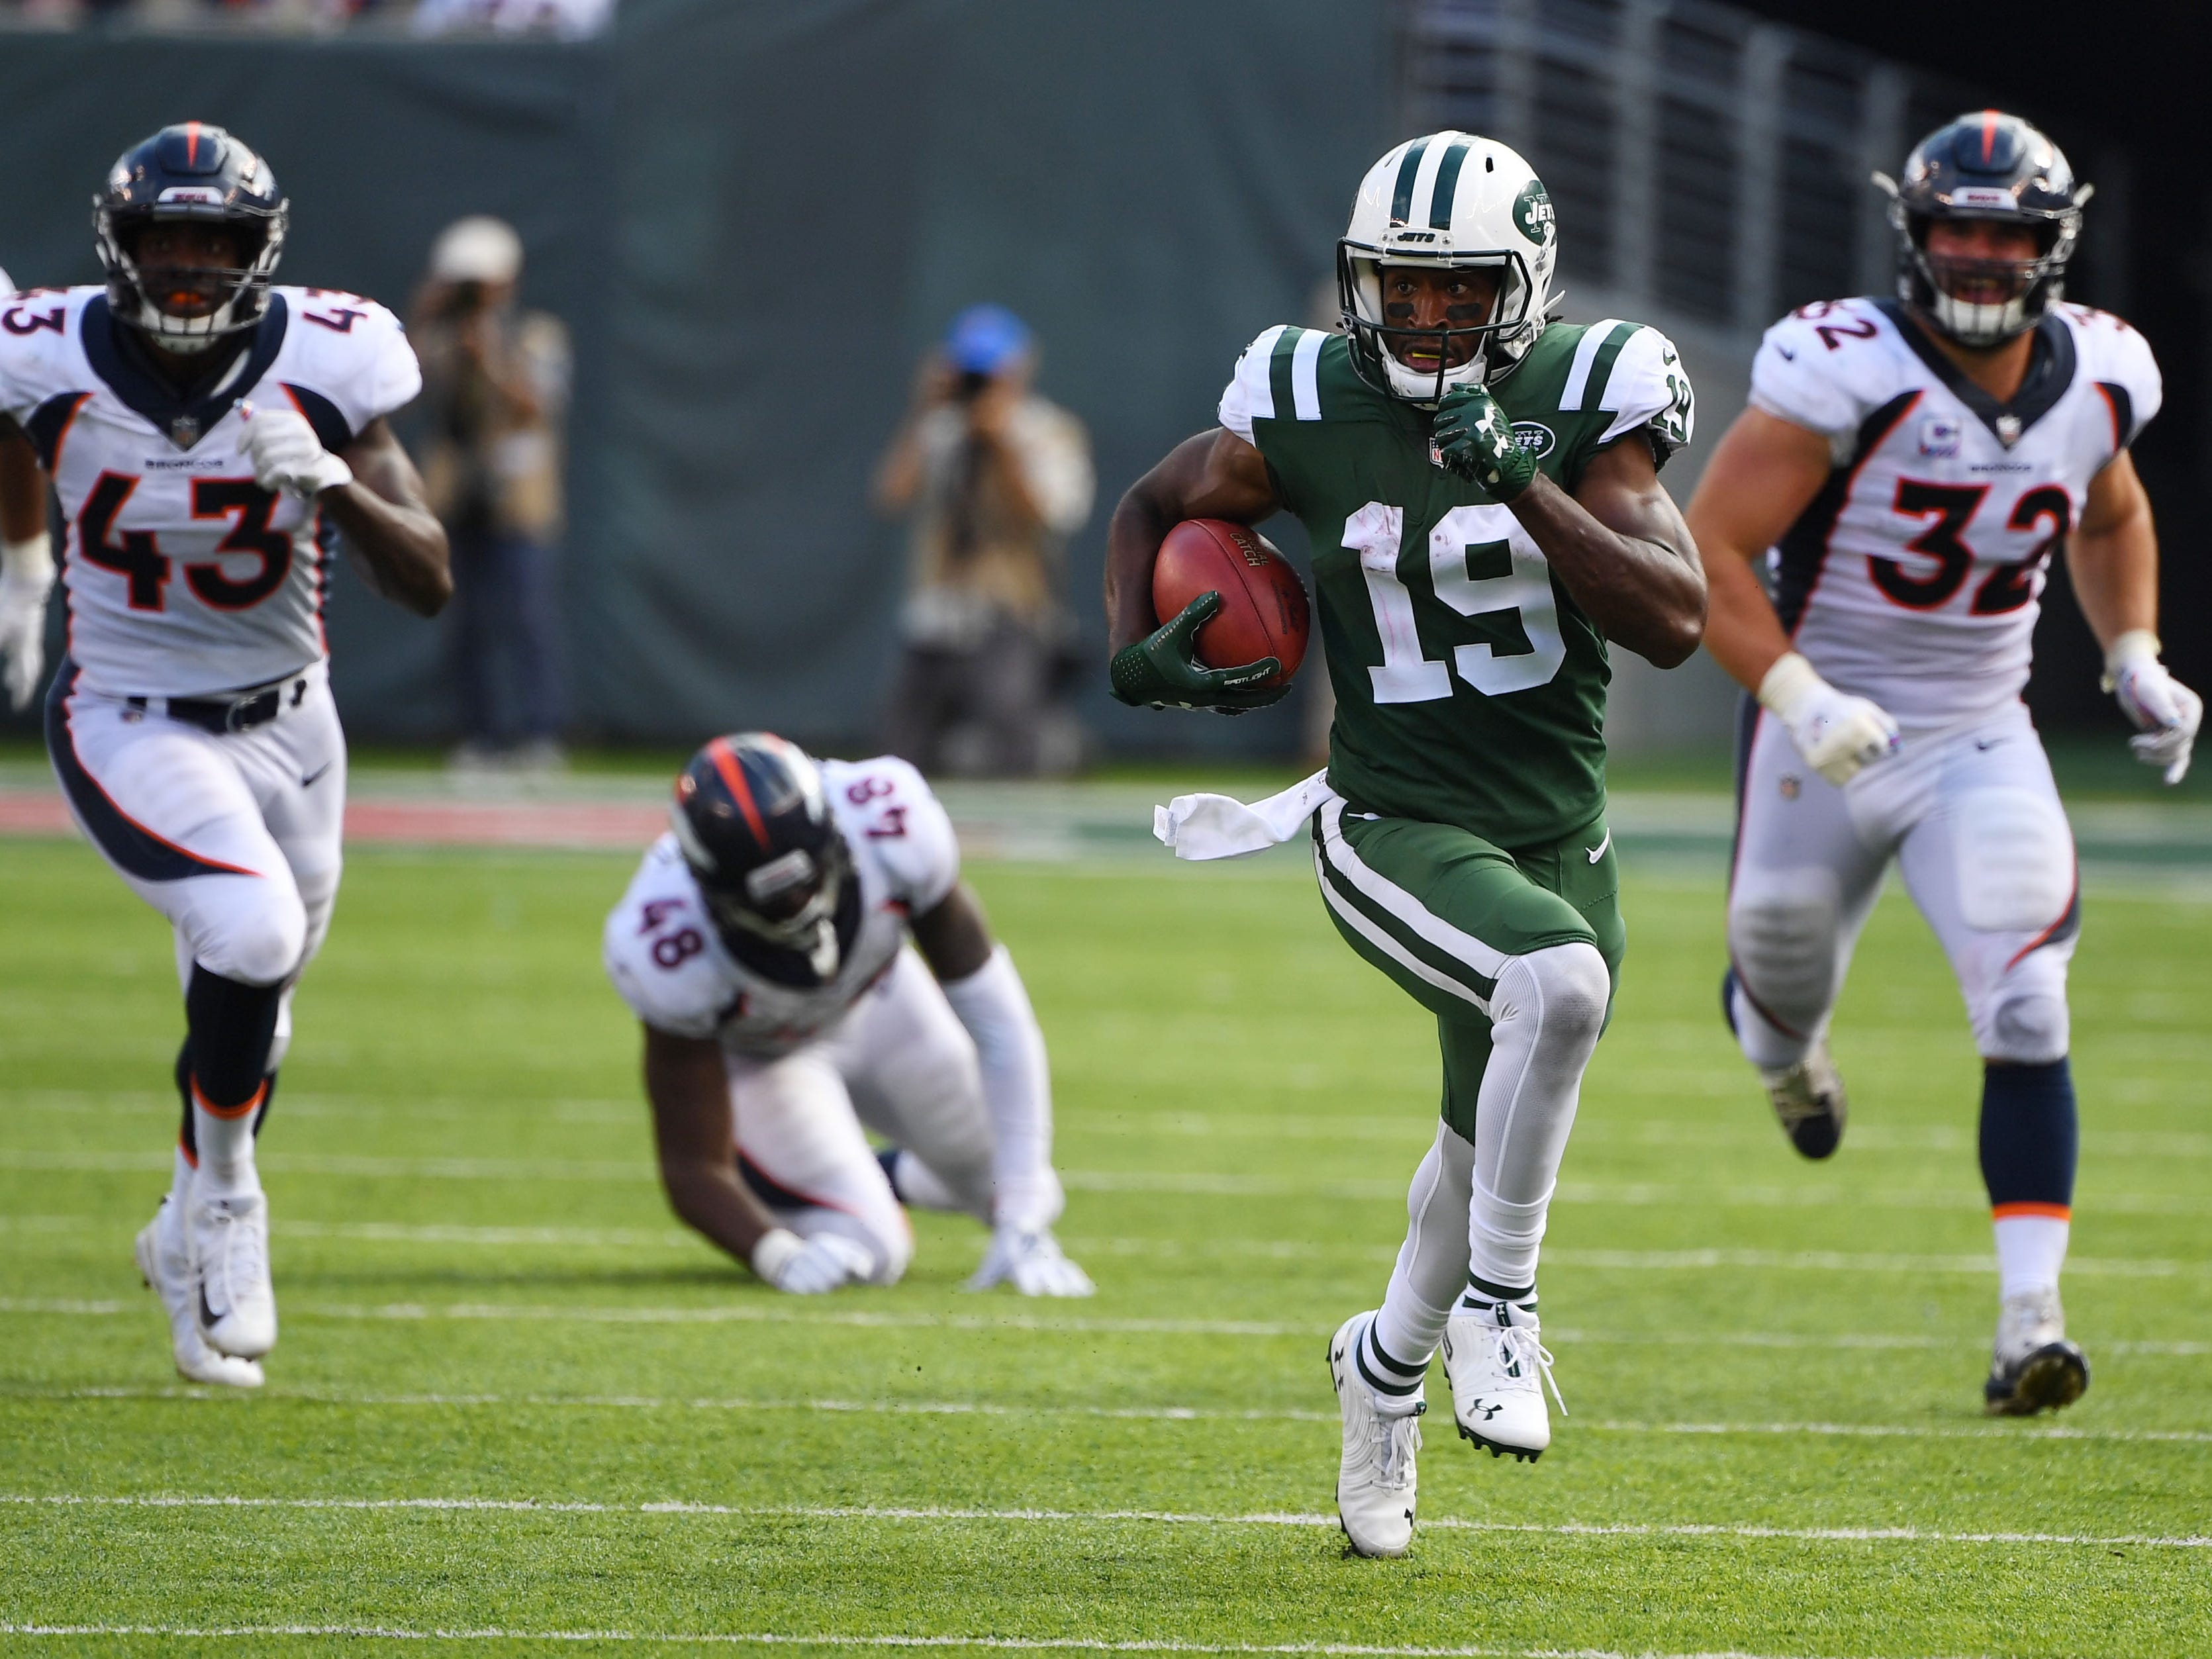 Return specialist - Andre Roberts, New York Jets